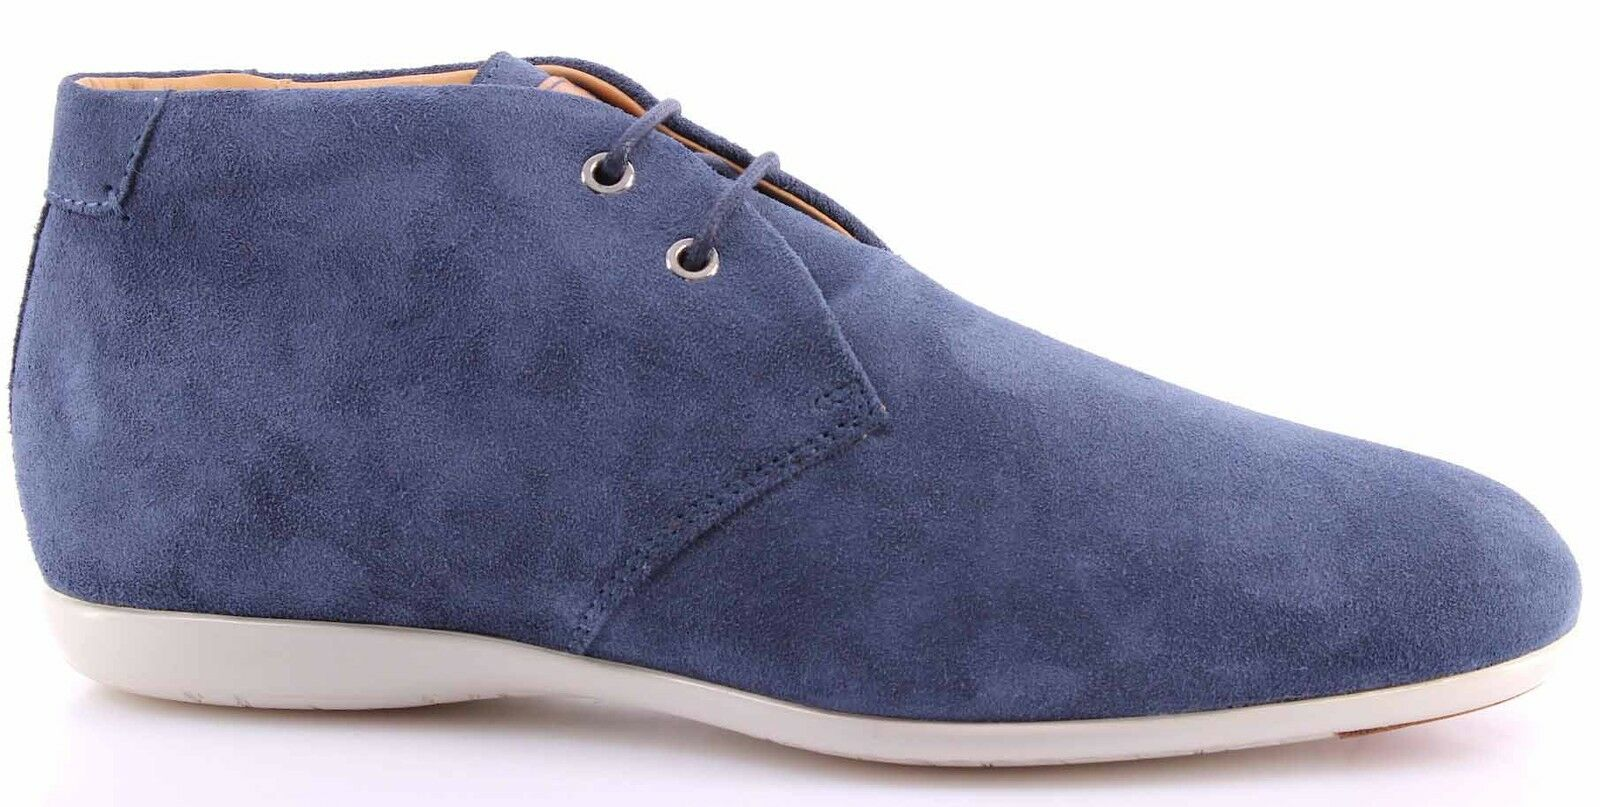 Mens Ankle botas zapatos SANTONI Suede azul Luxury Quality Made in  New